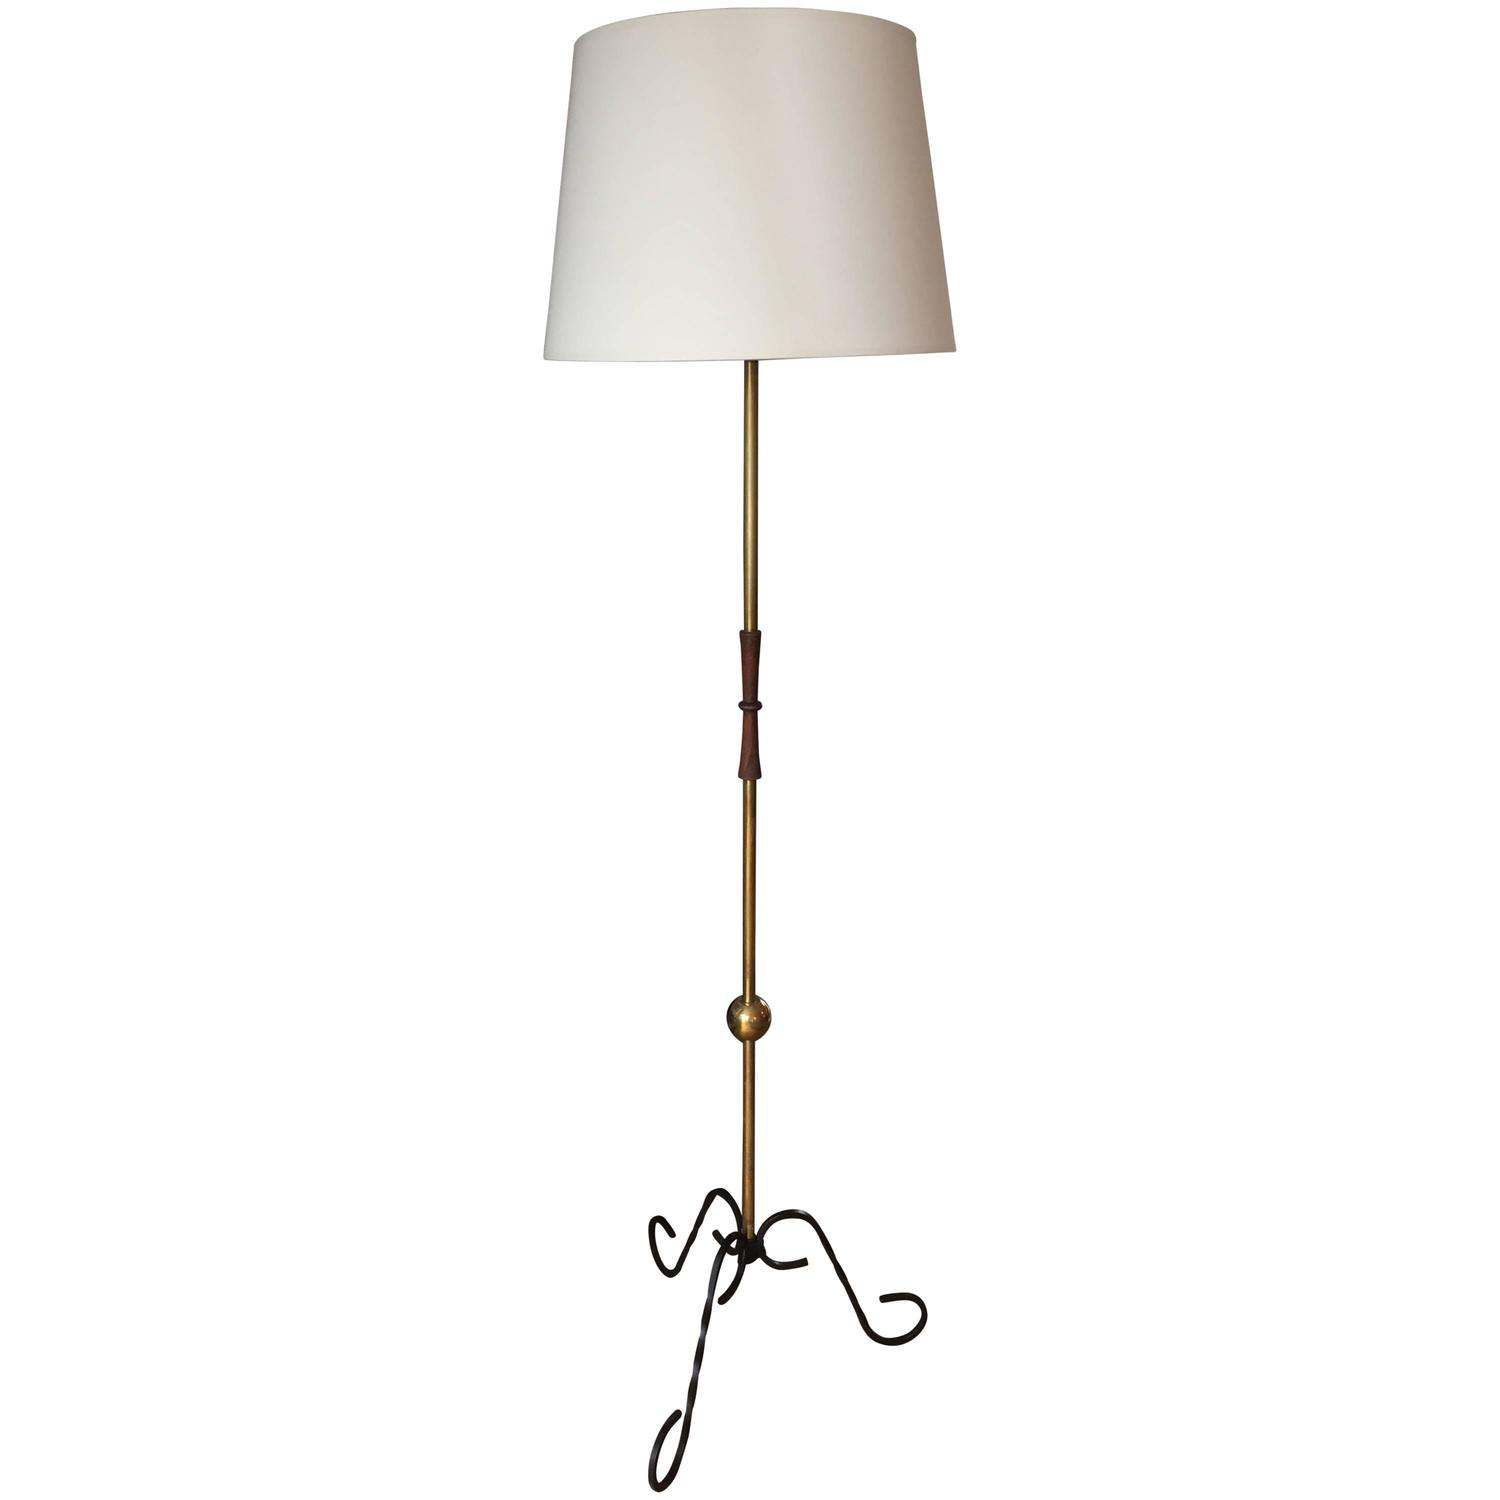 French 1950s brass floor lamp at 1stdibs for 1950 s brass floor lamp